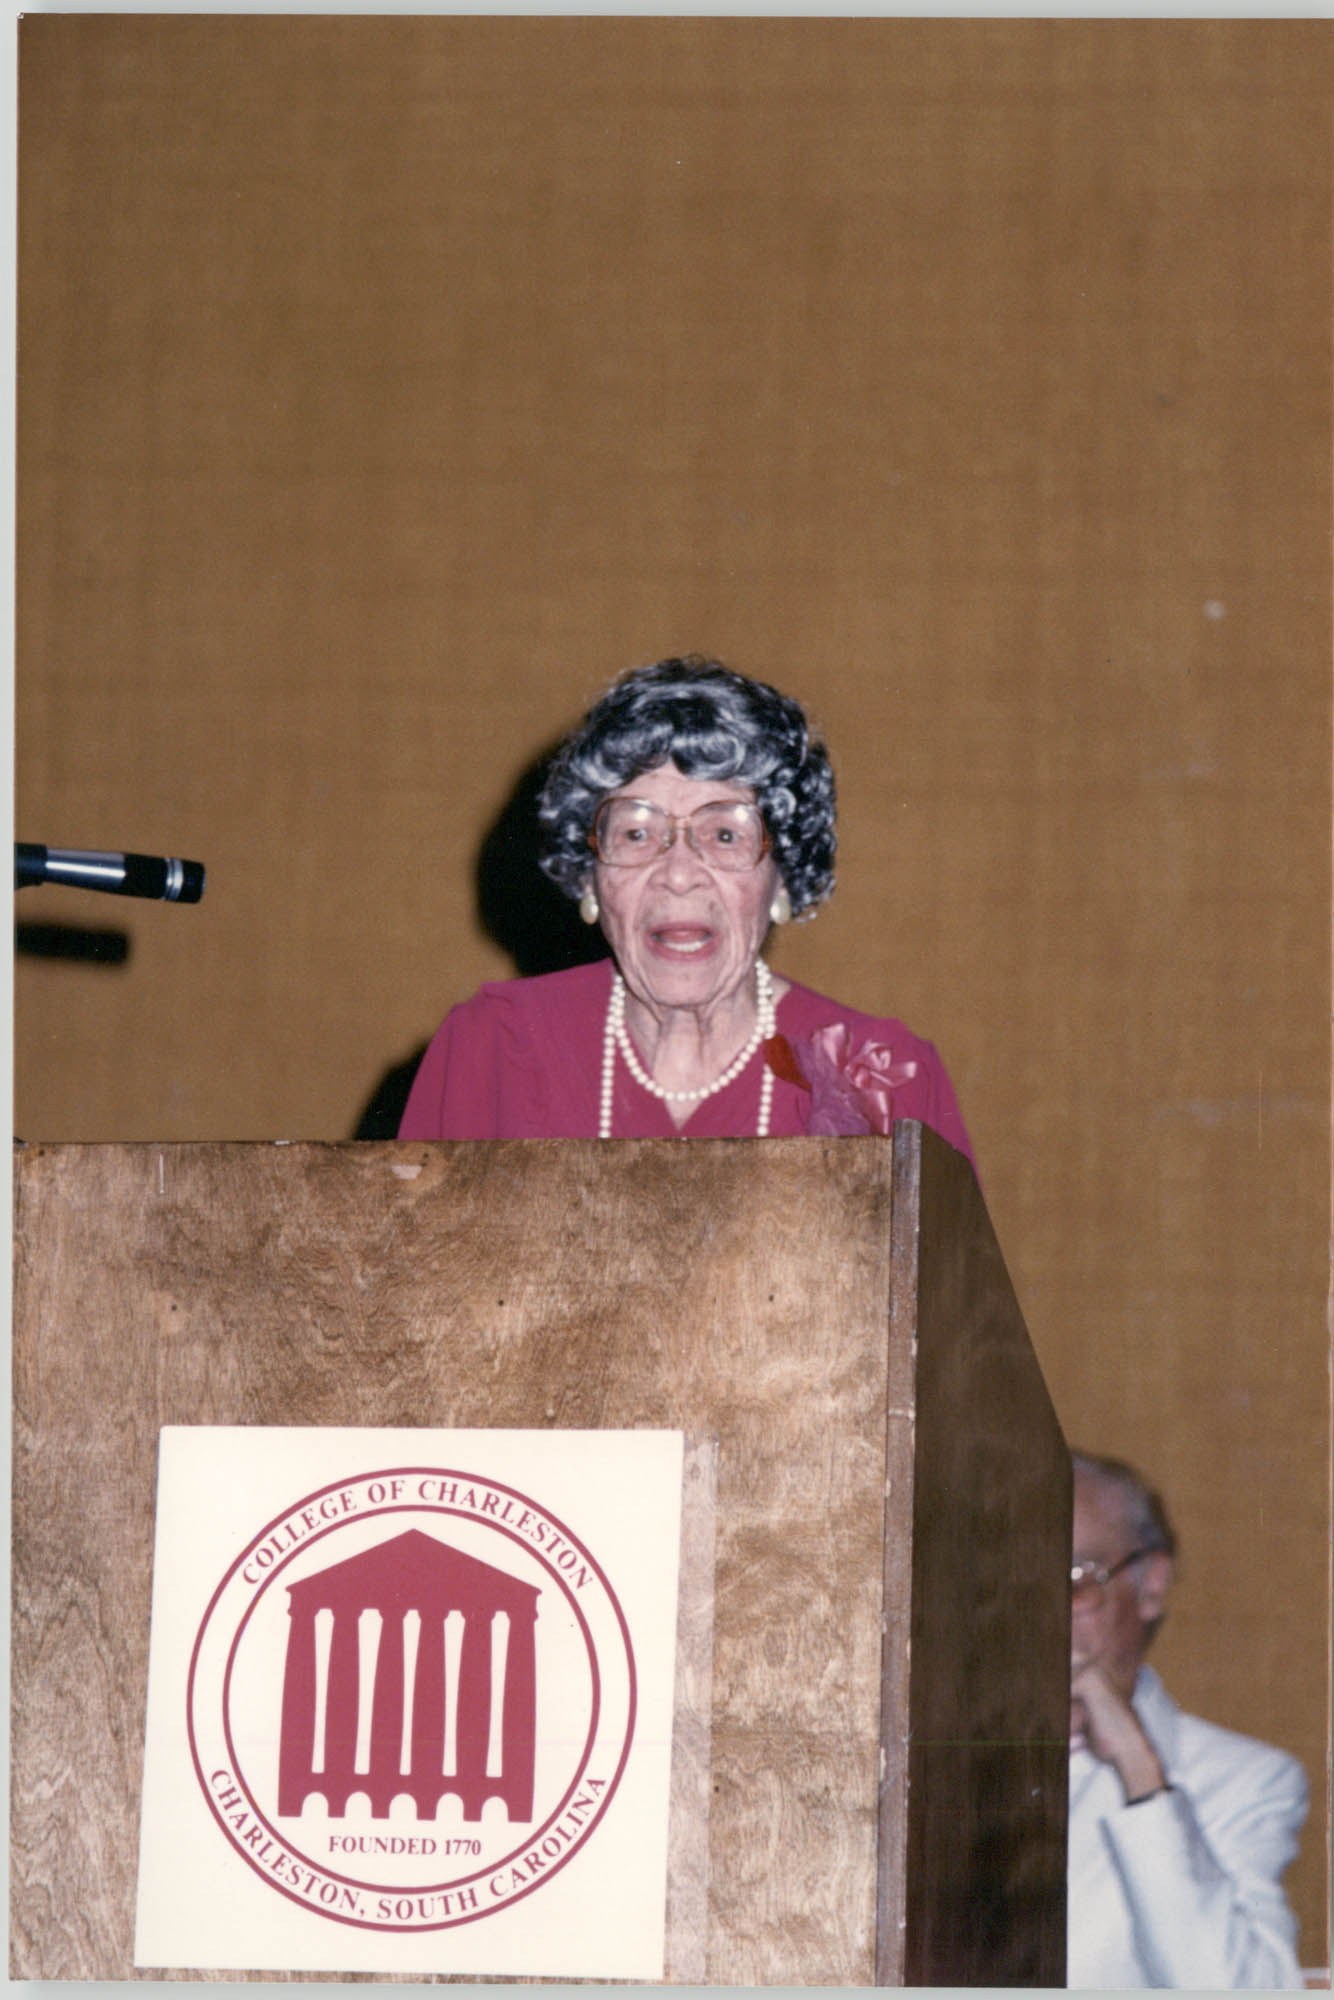 Photograph of Eva Hunt Hopkins at a College of Charleston Event